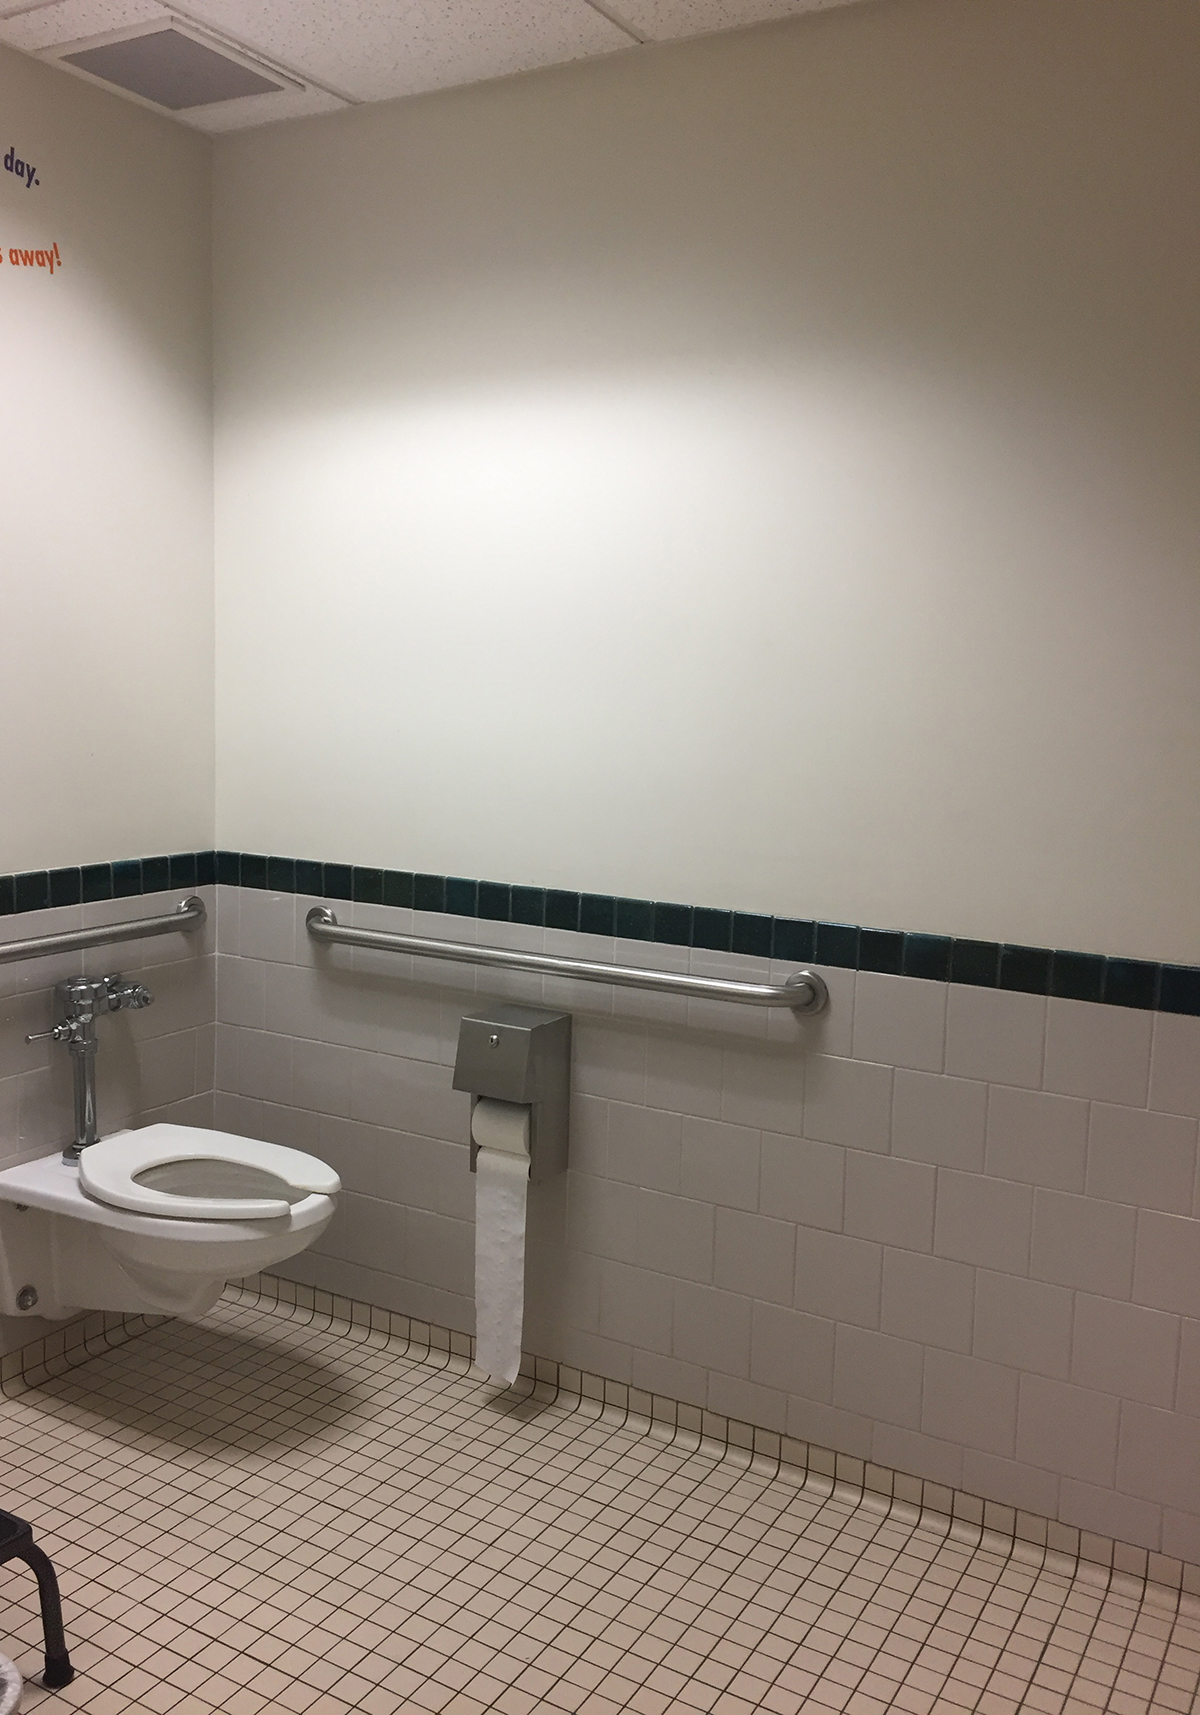 Off-white walls in the attached restroom.